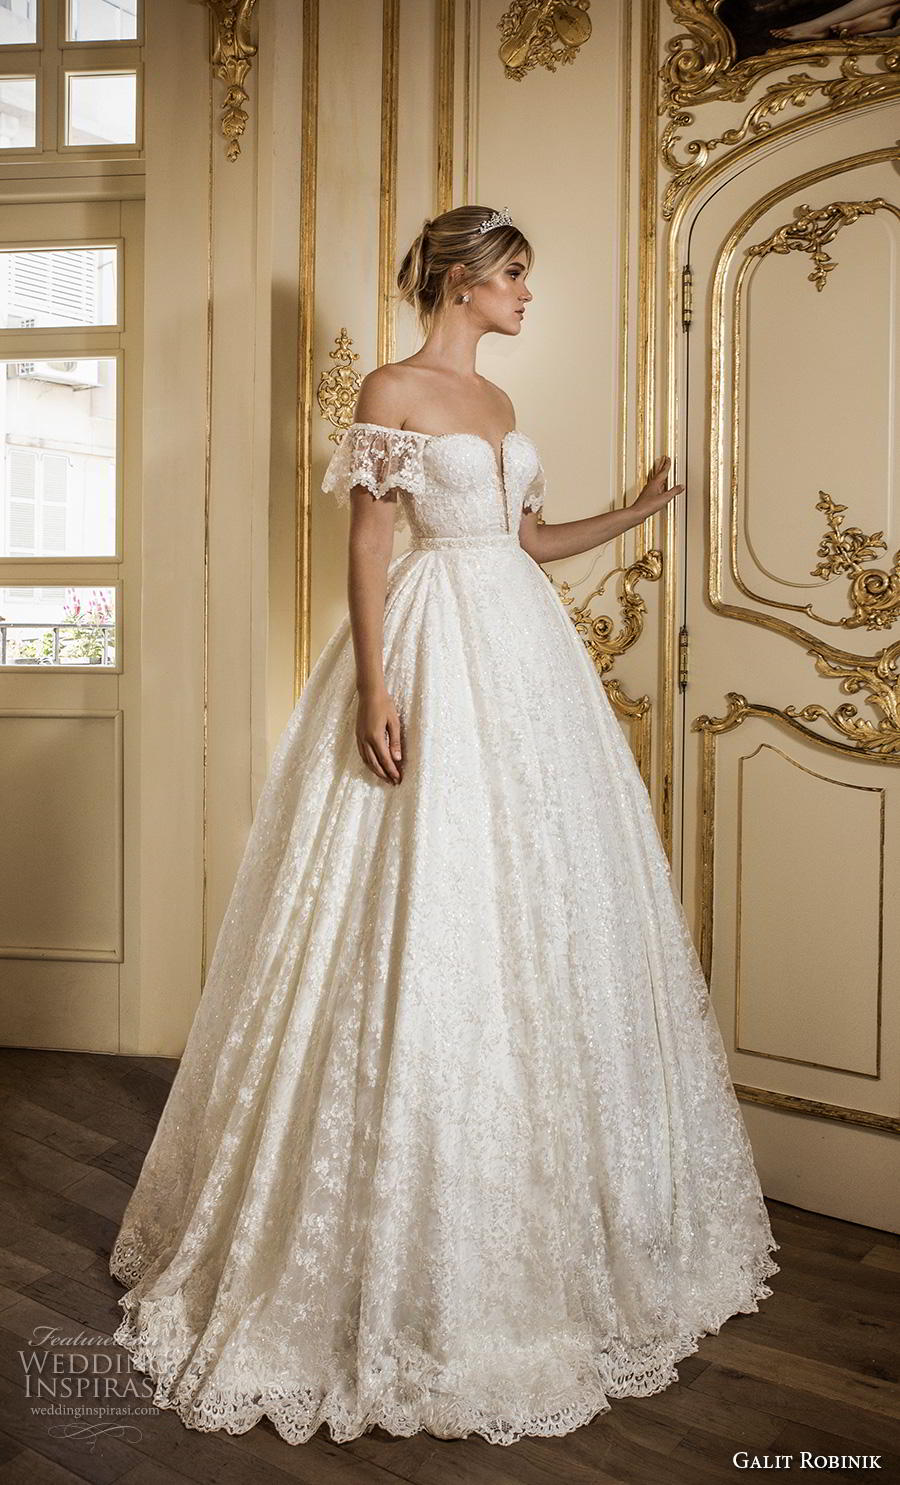 galit robinik 2019 bridal off the shoulder short sleeves plunging sweetheart neckline full embellishment romantic ball gown a  line wedding dress chapel train (9) mv